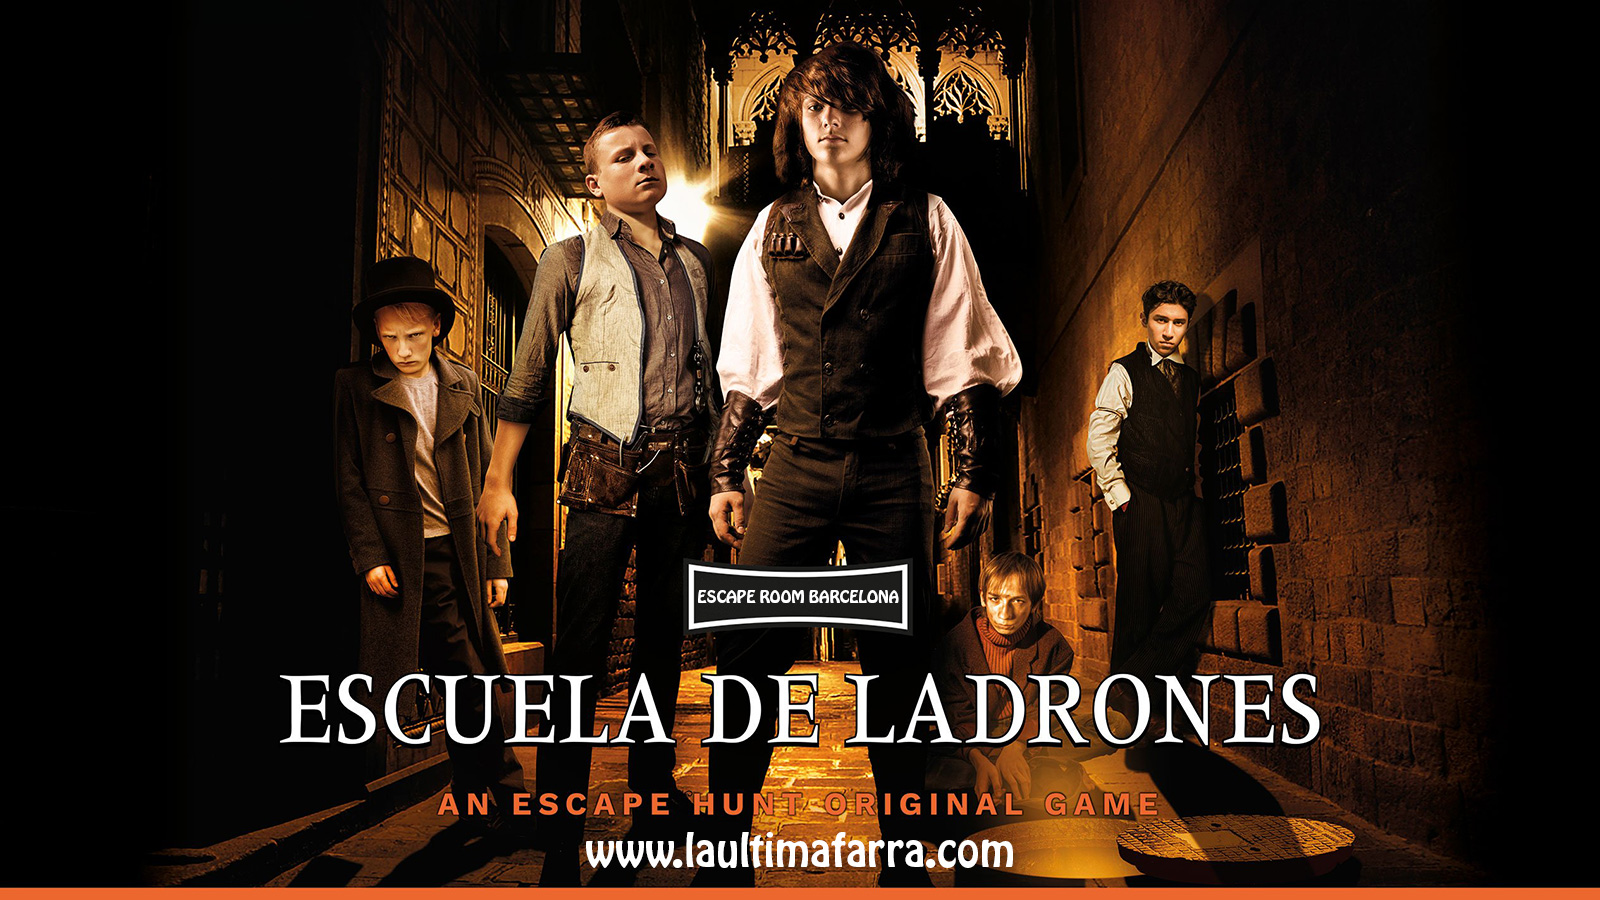 Escape Room Barcelona - Escuela de Ladrones